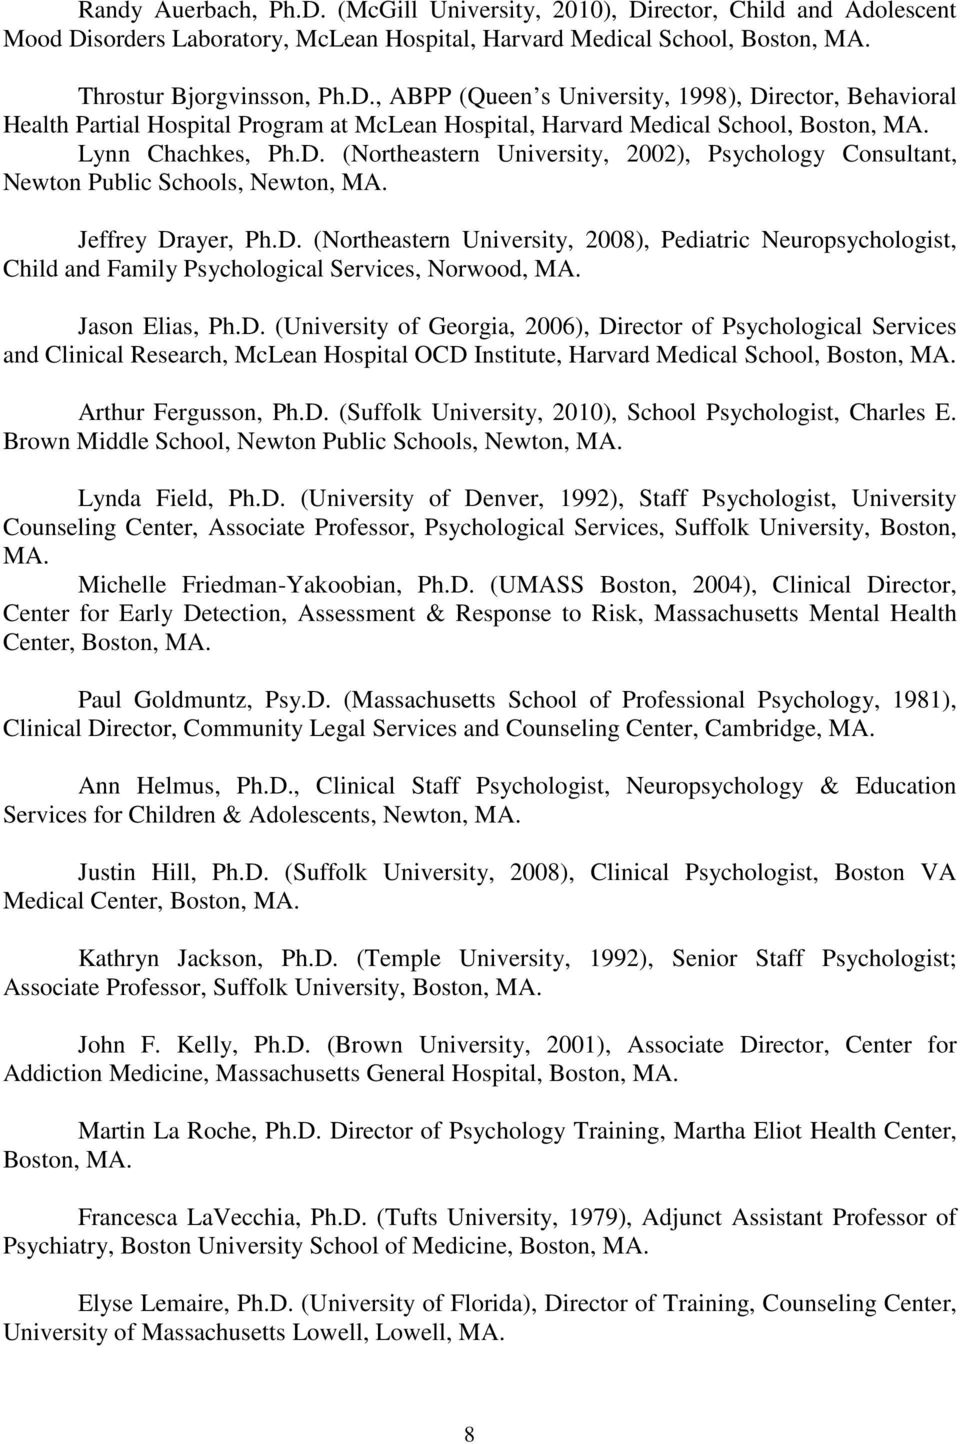 Jason Elias, Ph.D. (University of Georgia, 2006), Director of Psychological Services and Clinical Research, McLean Hospital OCD Institute, Harvard Medical School, Boston, MA. Arthur Fergusson, Ph.D. (Suffolk University, 2010), School Psychologist, Charles E.